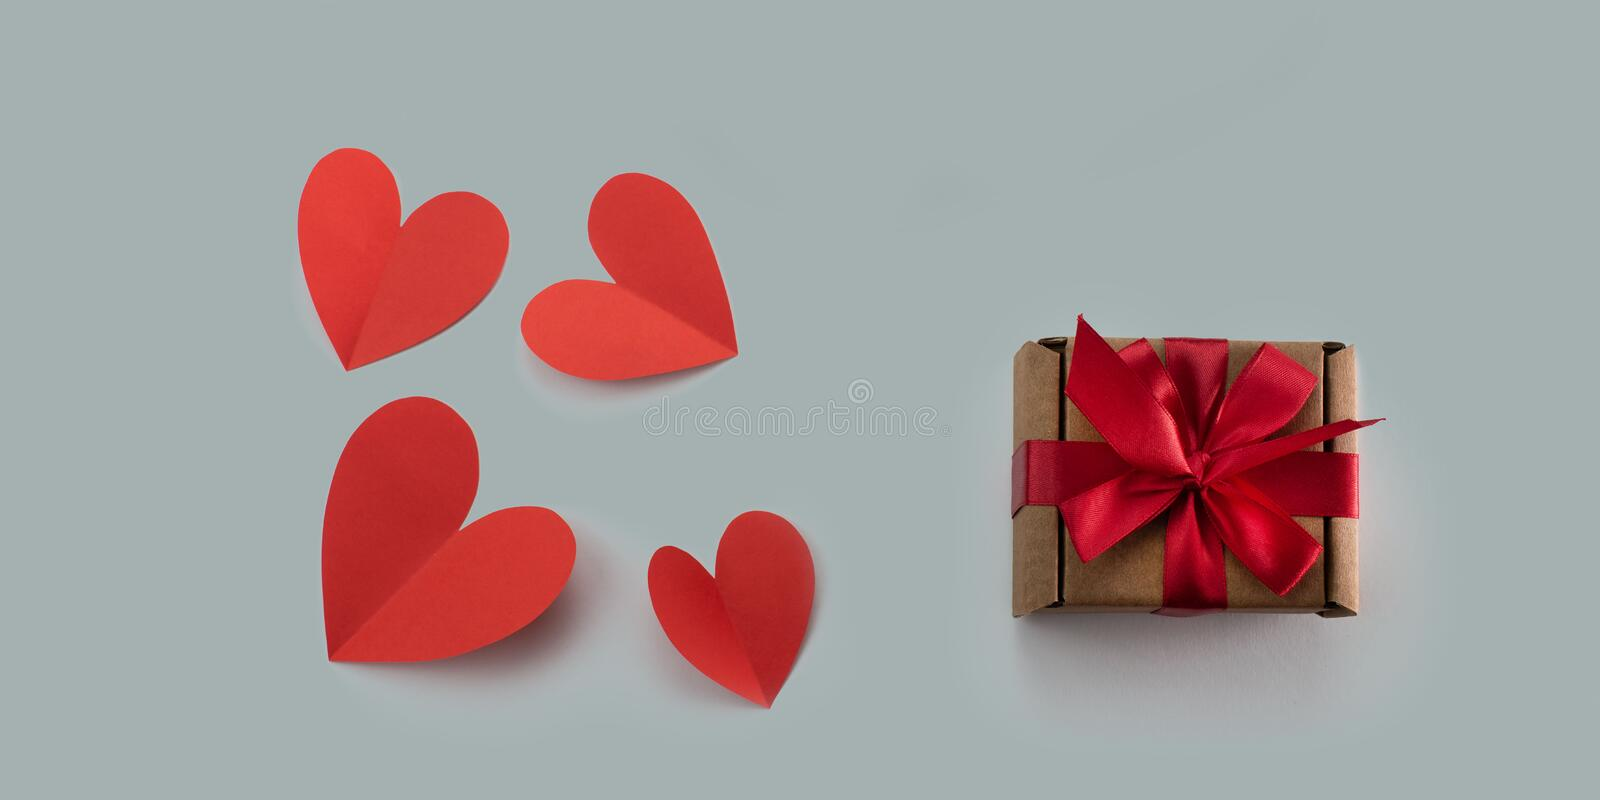 Red paper hearts gray background concept of Valentine& x27;s day stock photos